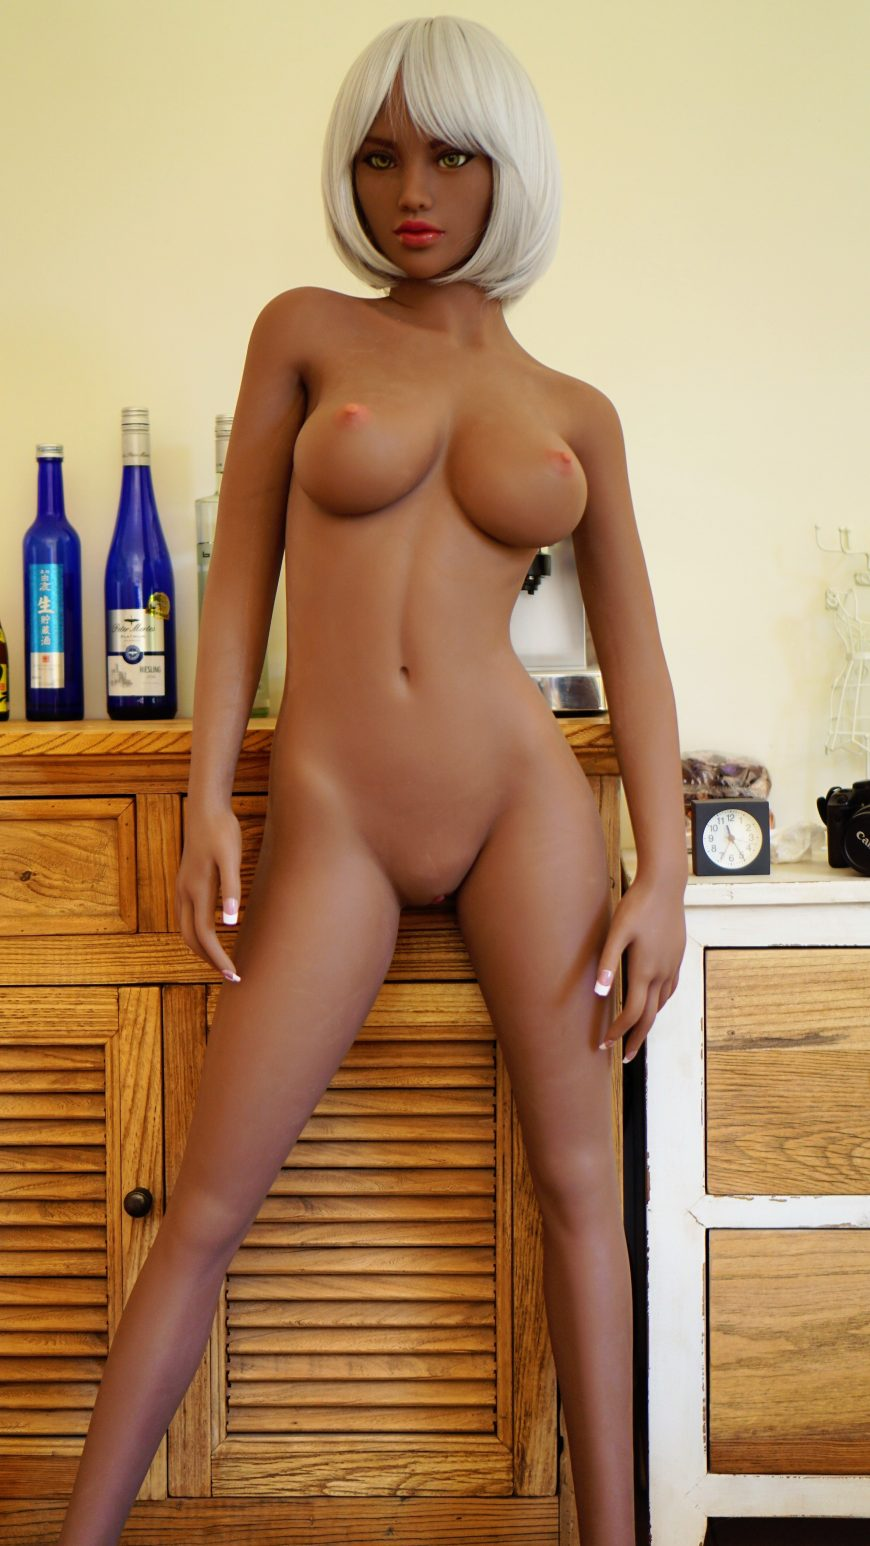 Gilly-Sex-Doll-from-Dirty-Knights-Sex-Dolls-posing-naked-1 (15)